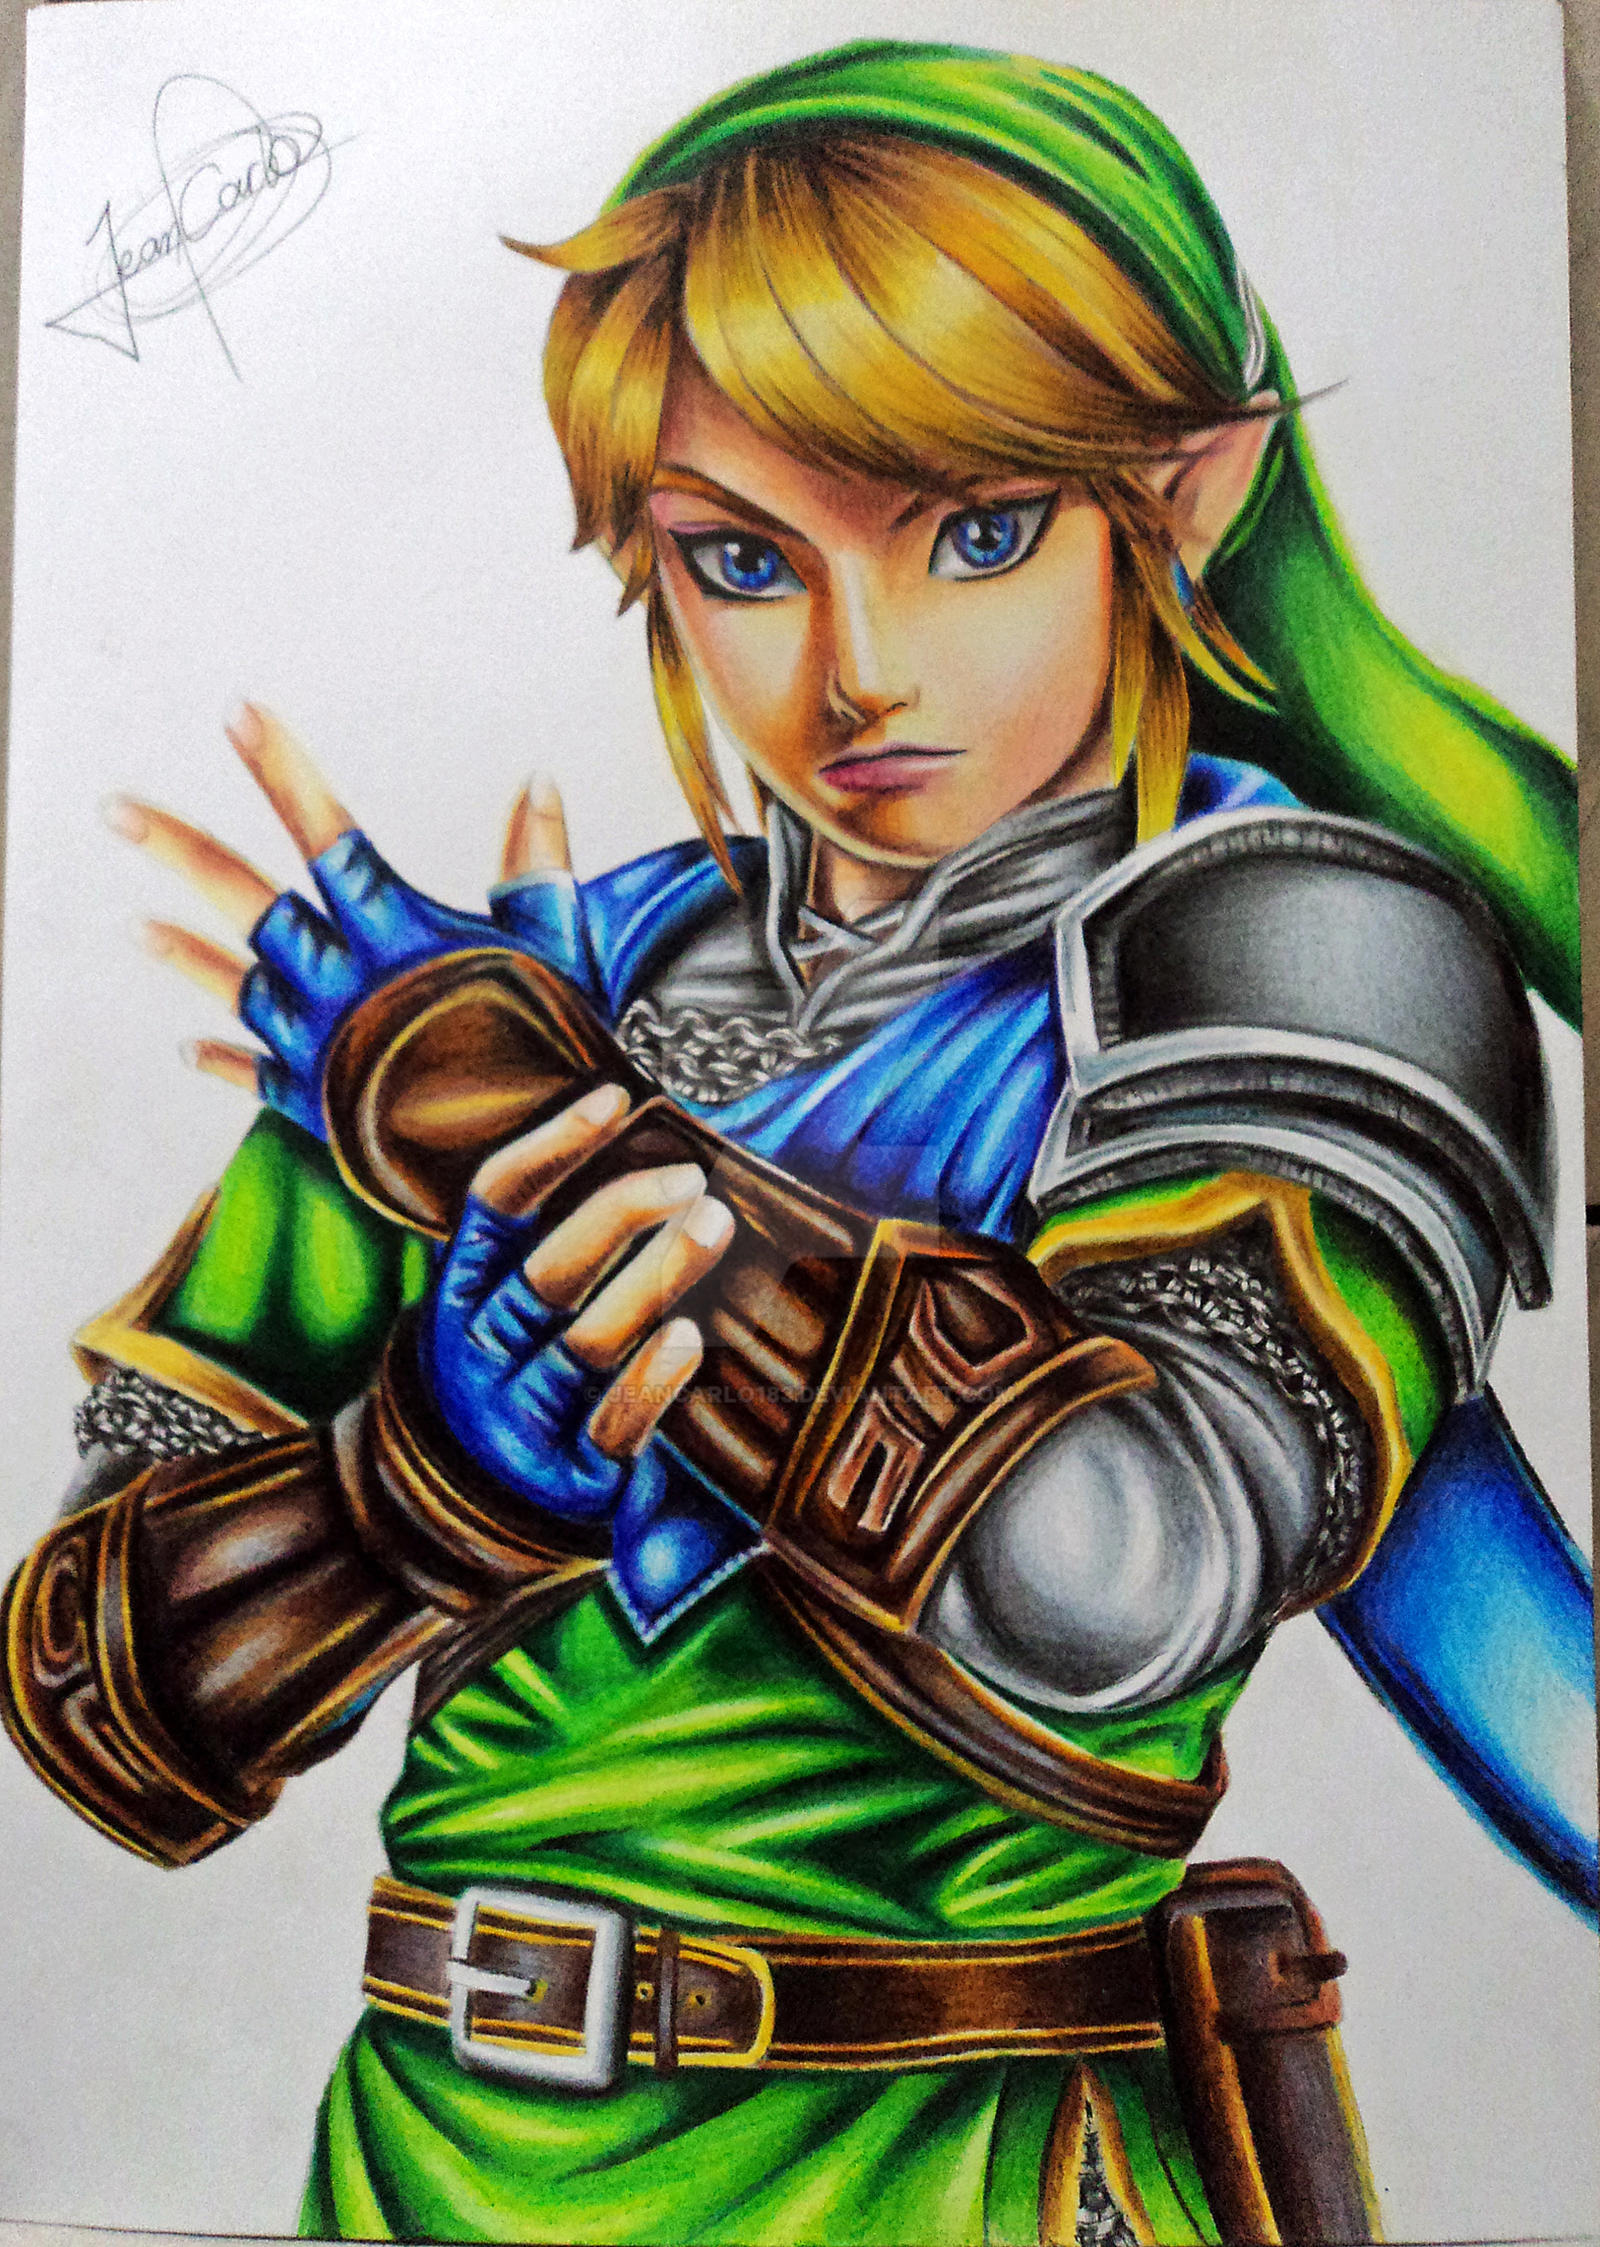 Uuu U >> Link - The Legend of Zelda: Hyrule Warriors by JeanCarlo183 on DeviantArt